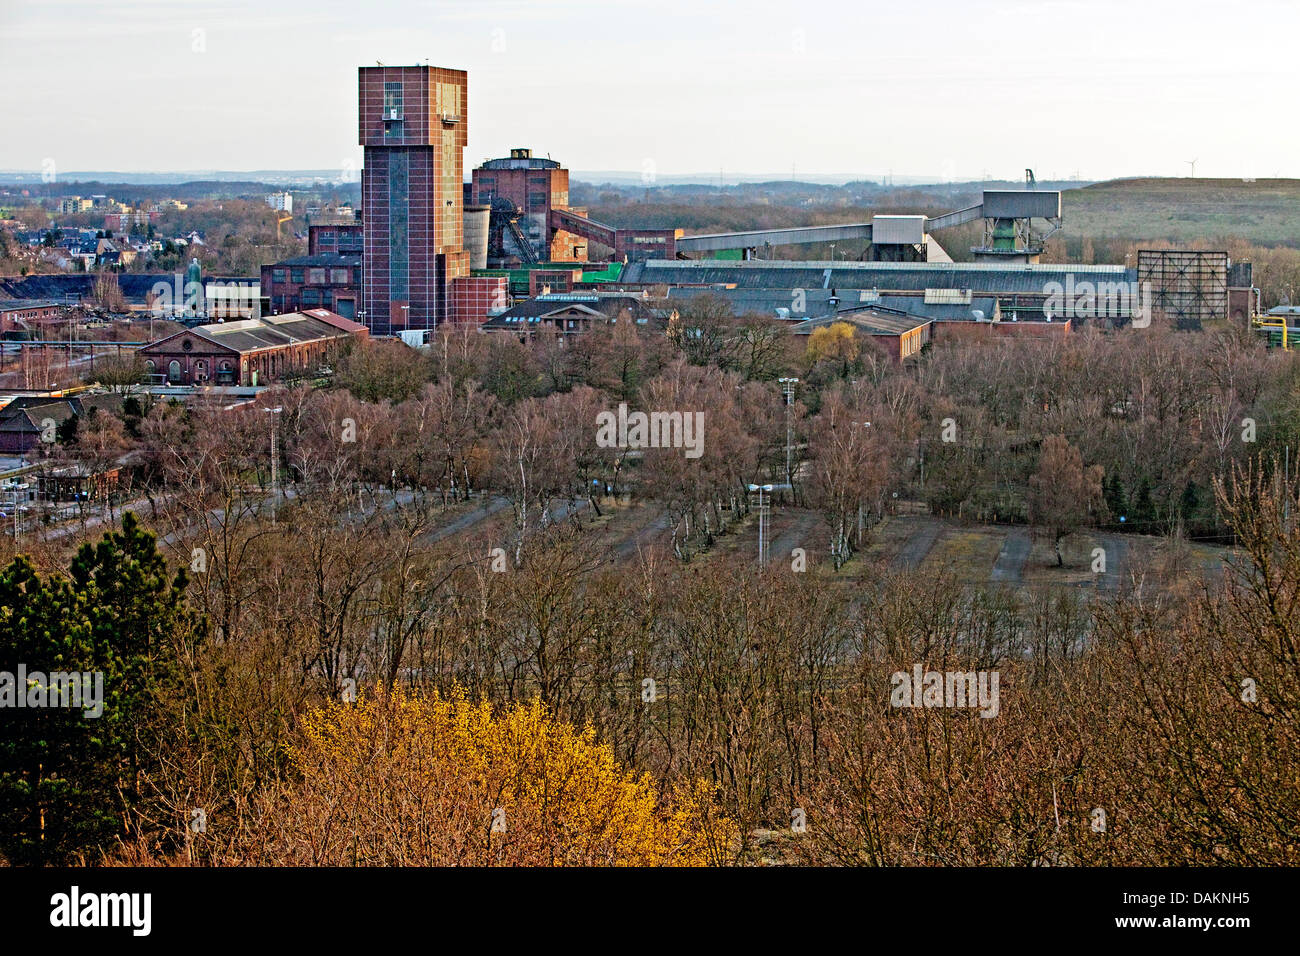 view from the Kissinger Hoehe at the pit Ost of the coal mine Heinrich Robert with the Hammerkopfturm, Germany, - Stock Image